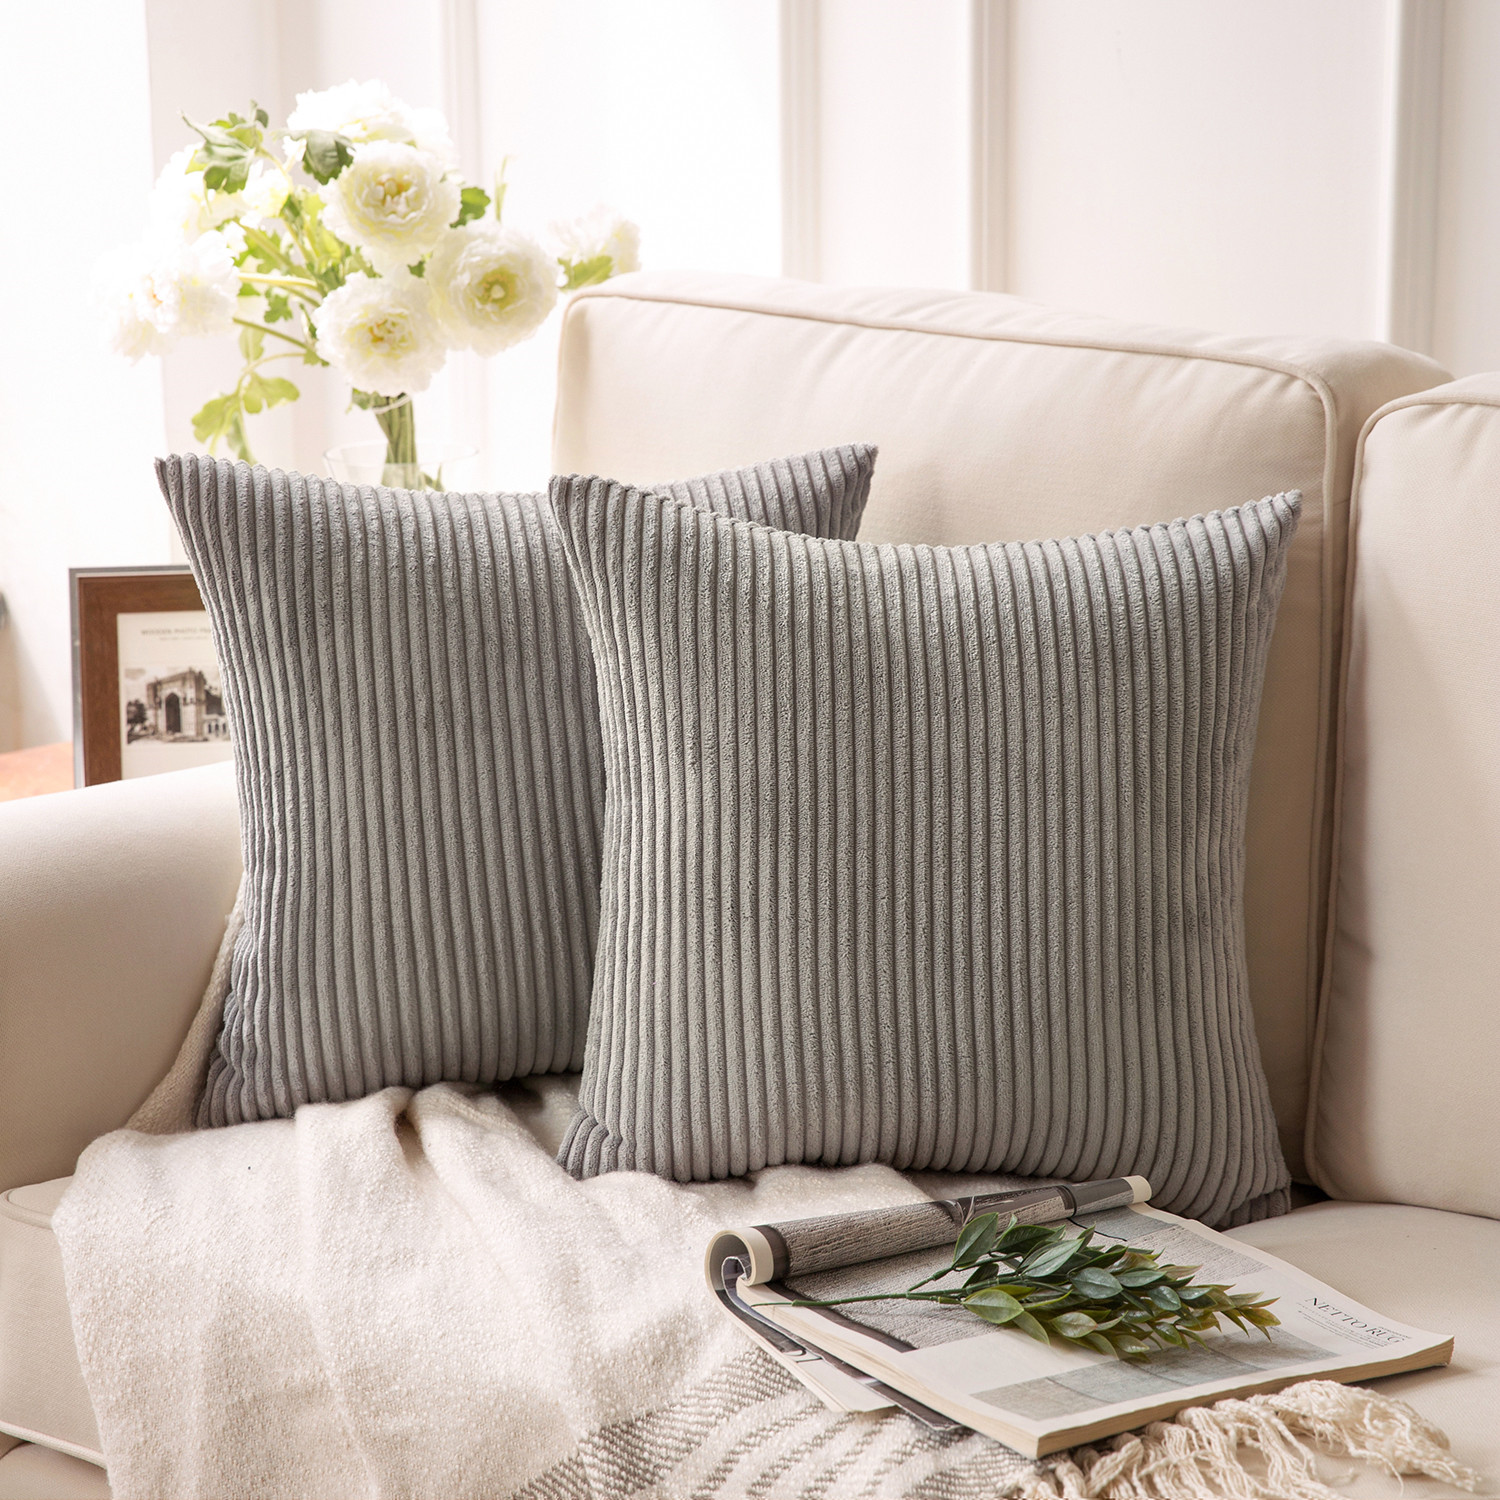 Winter Decor Pillow Covers Thanksgivining Soft Decorative Striped Corduroy Velve